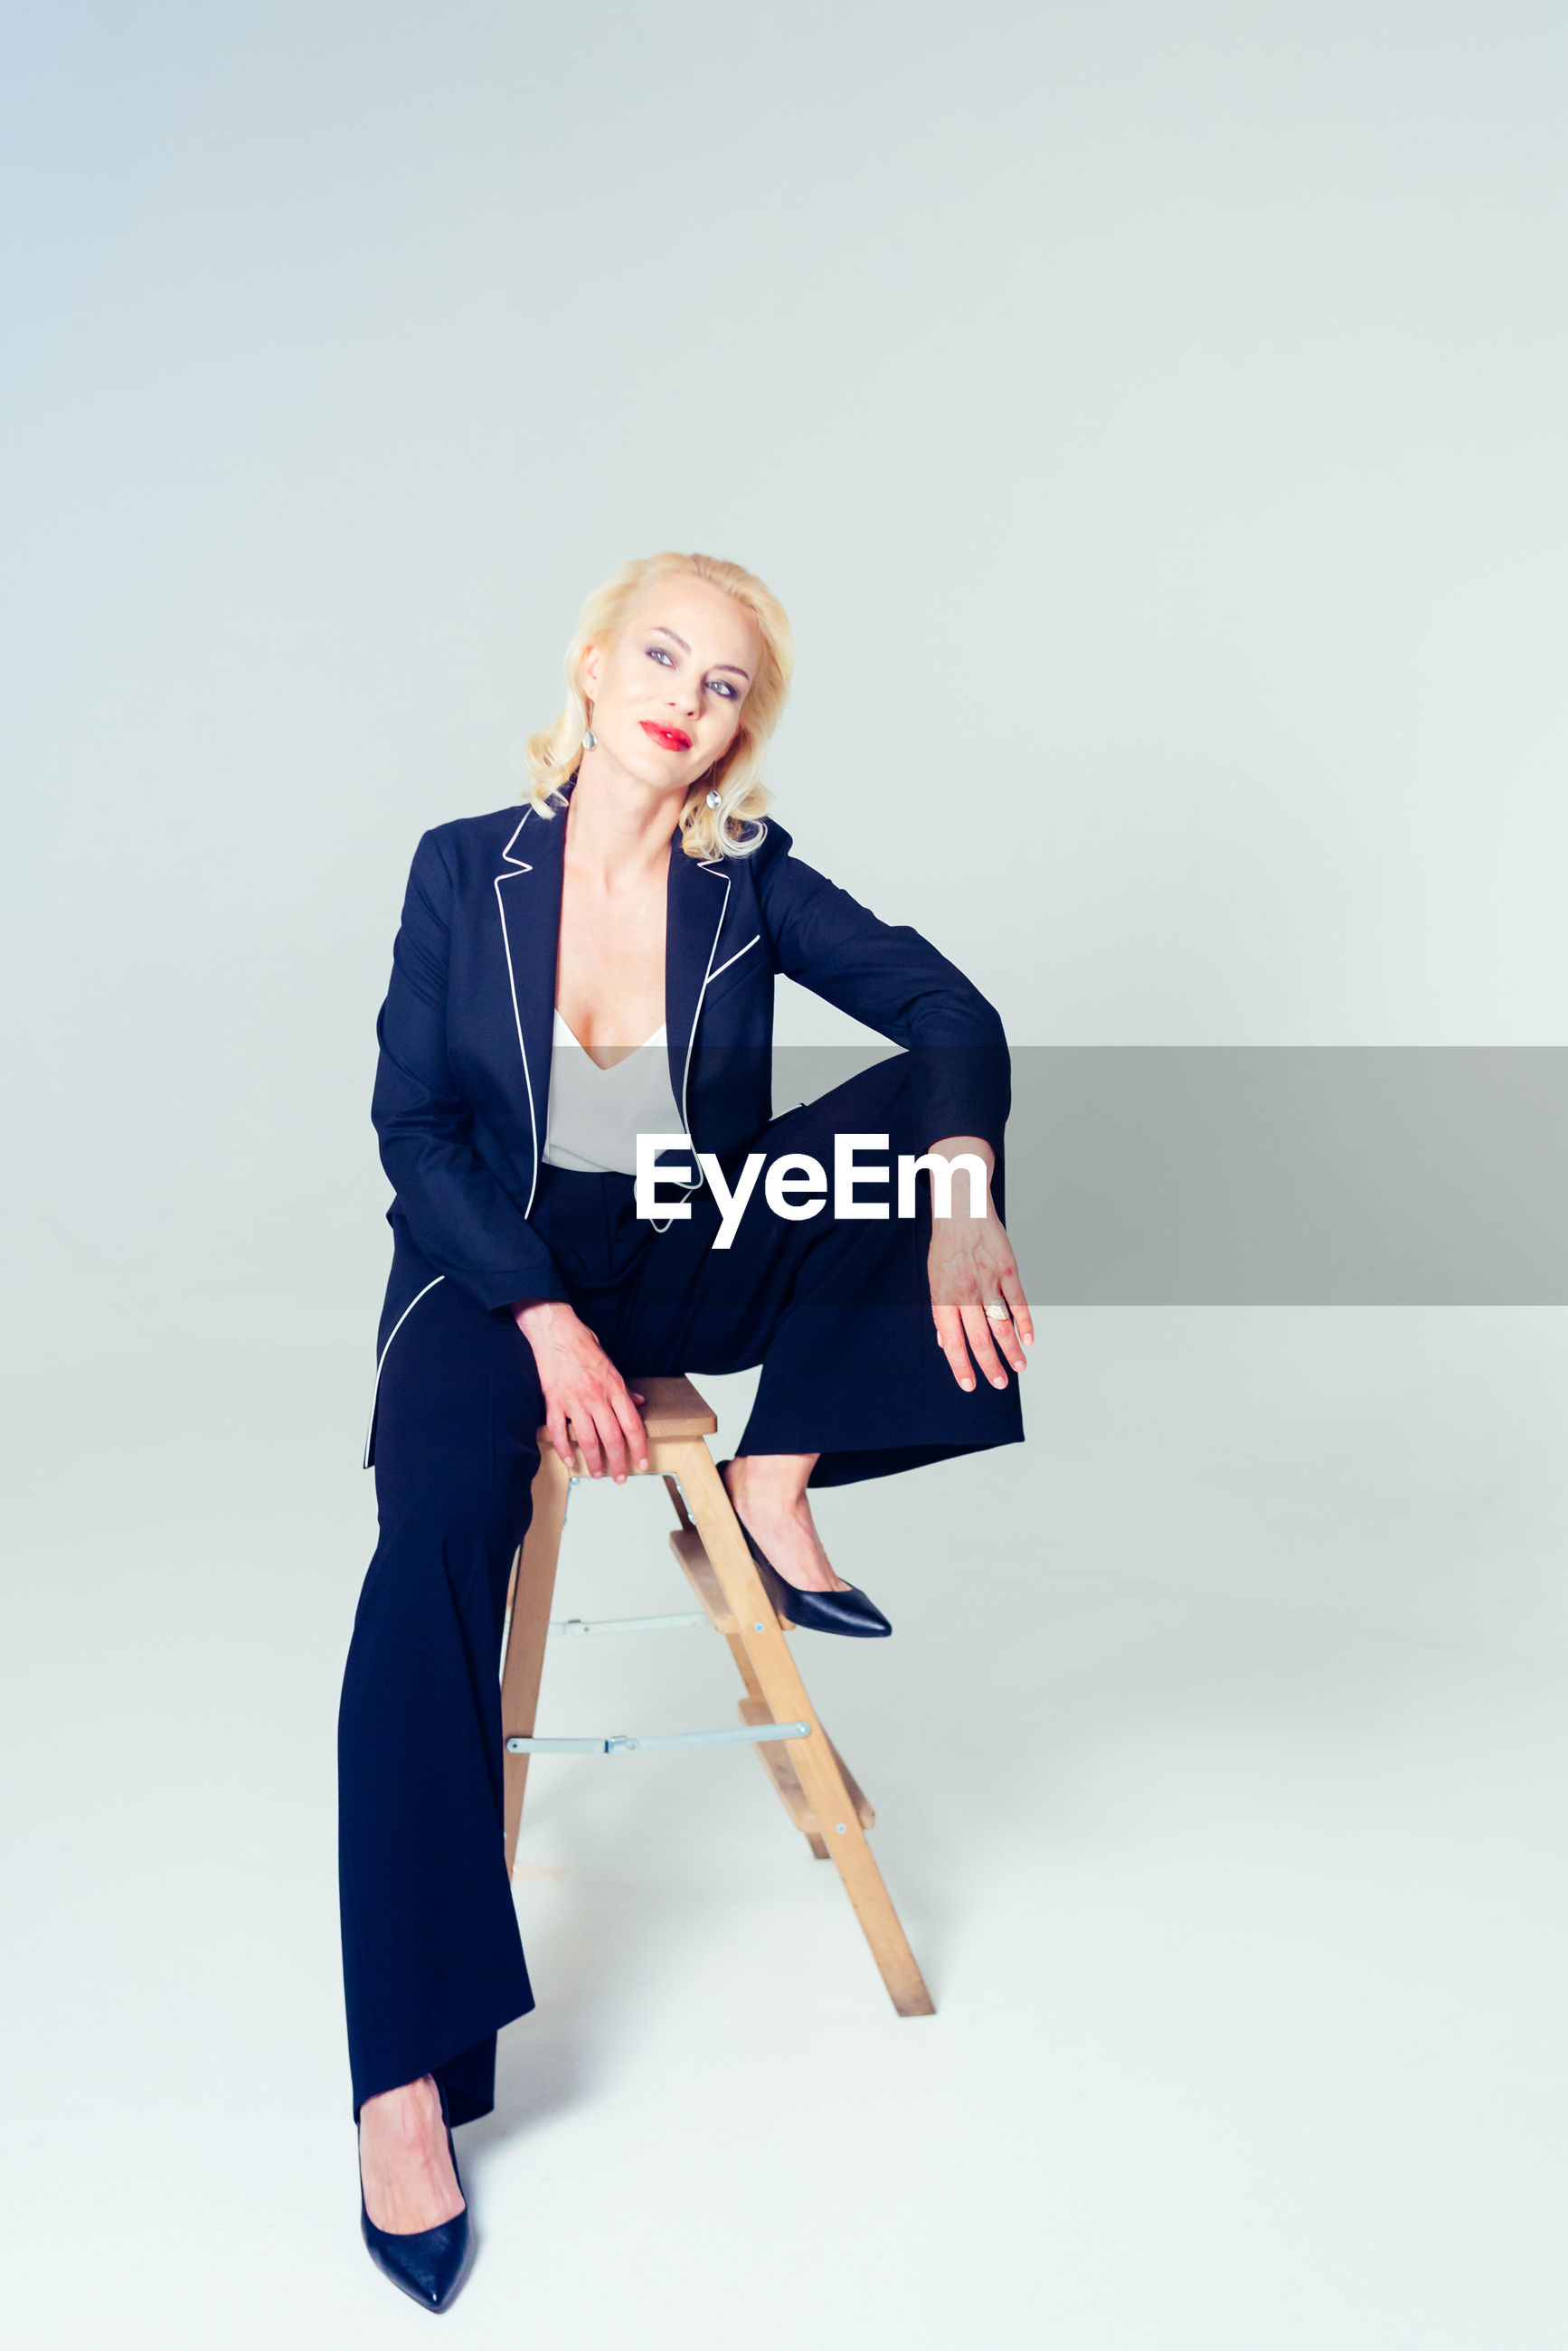 Smiling businesswoman sitting on stool against white background